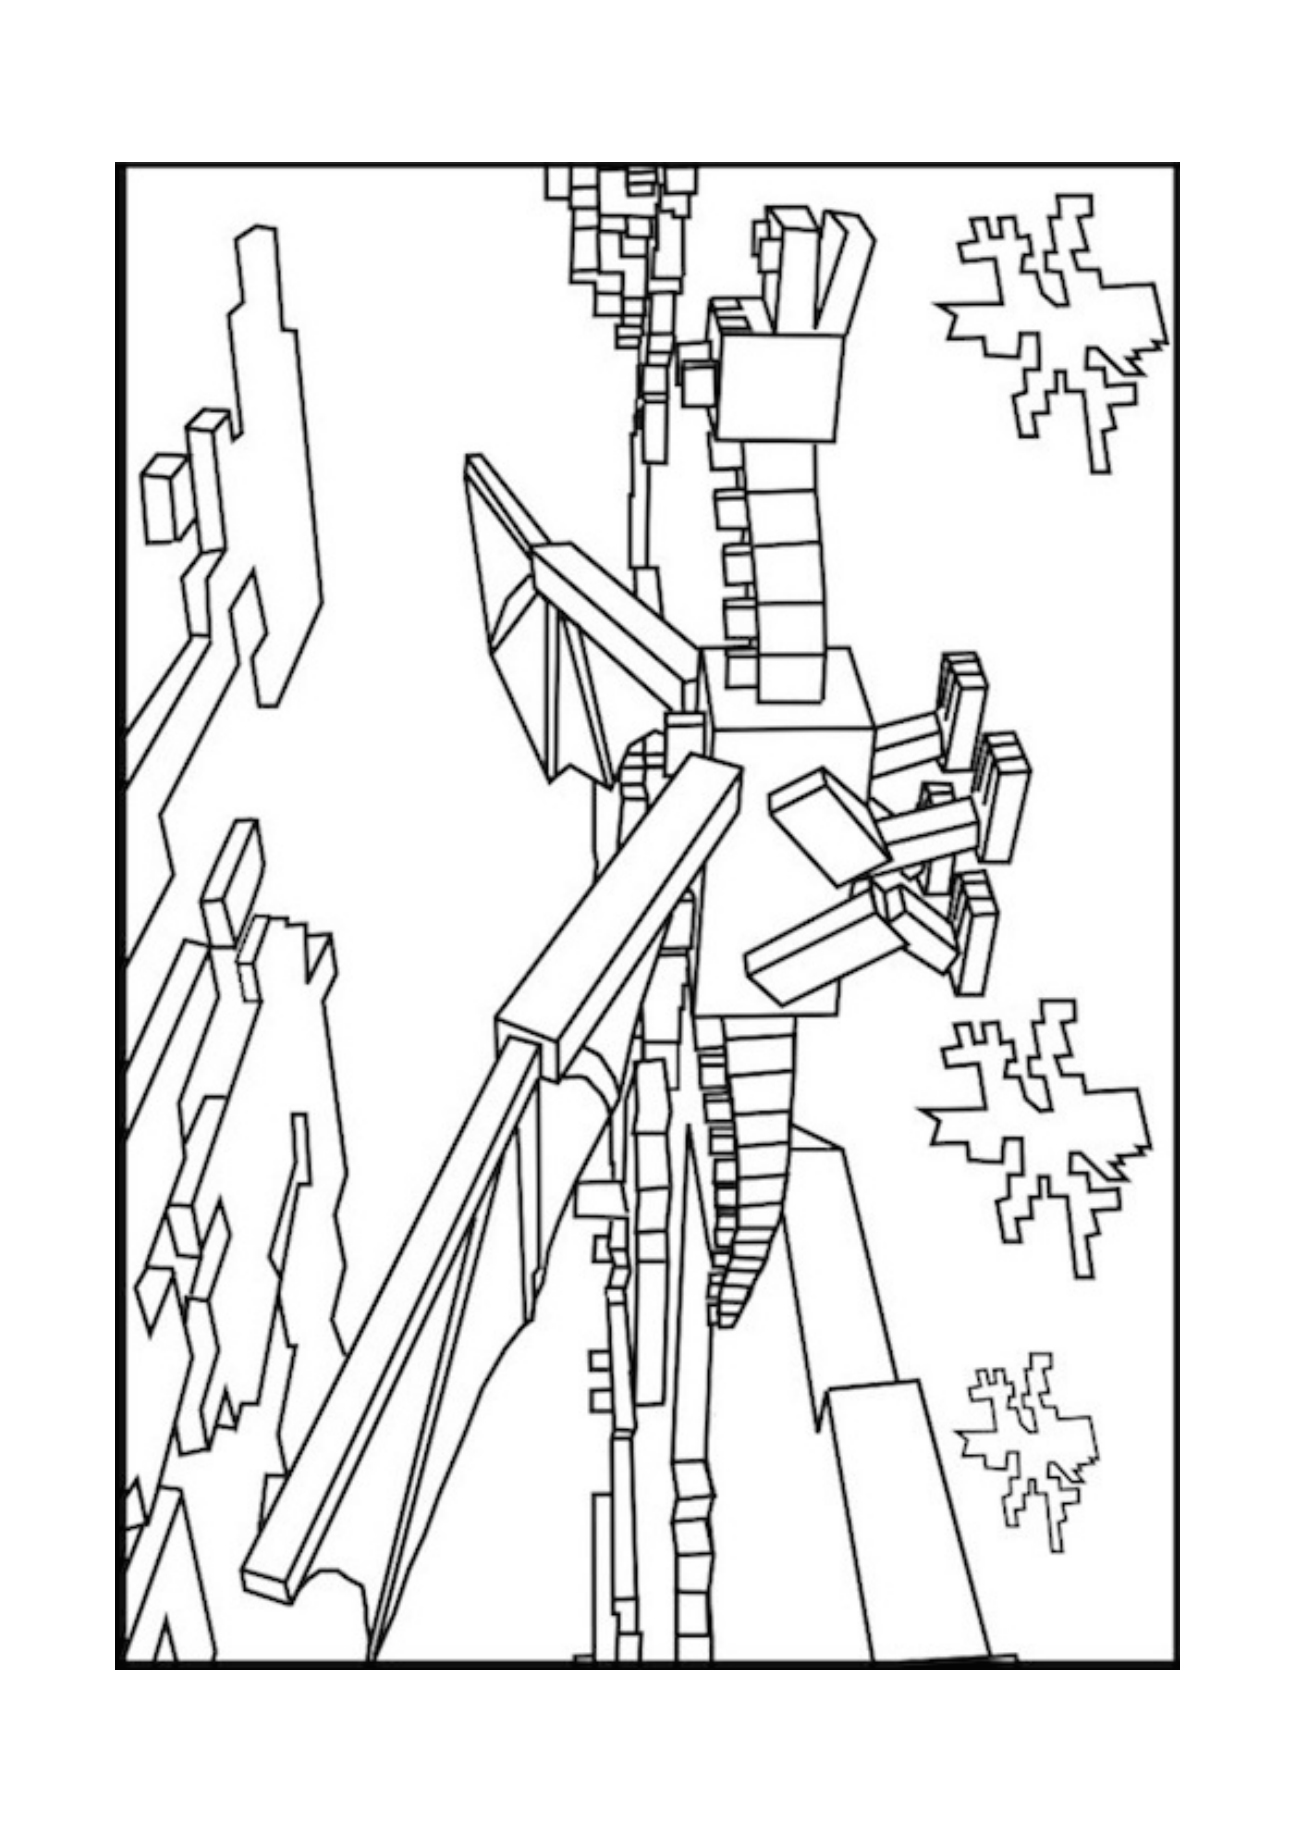 coloring pages minecraft minecraft sword coloring pages at getcoloringscom free coloring minecraft pages